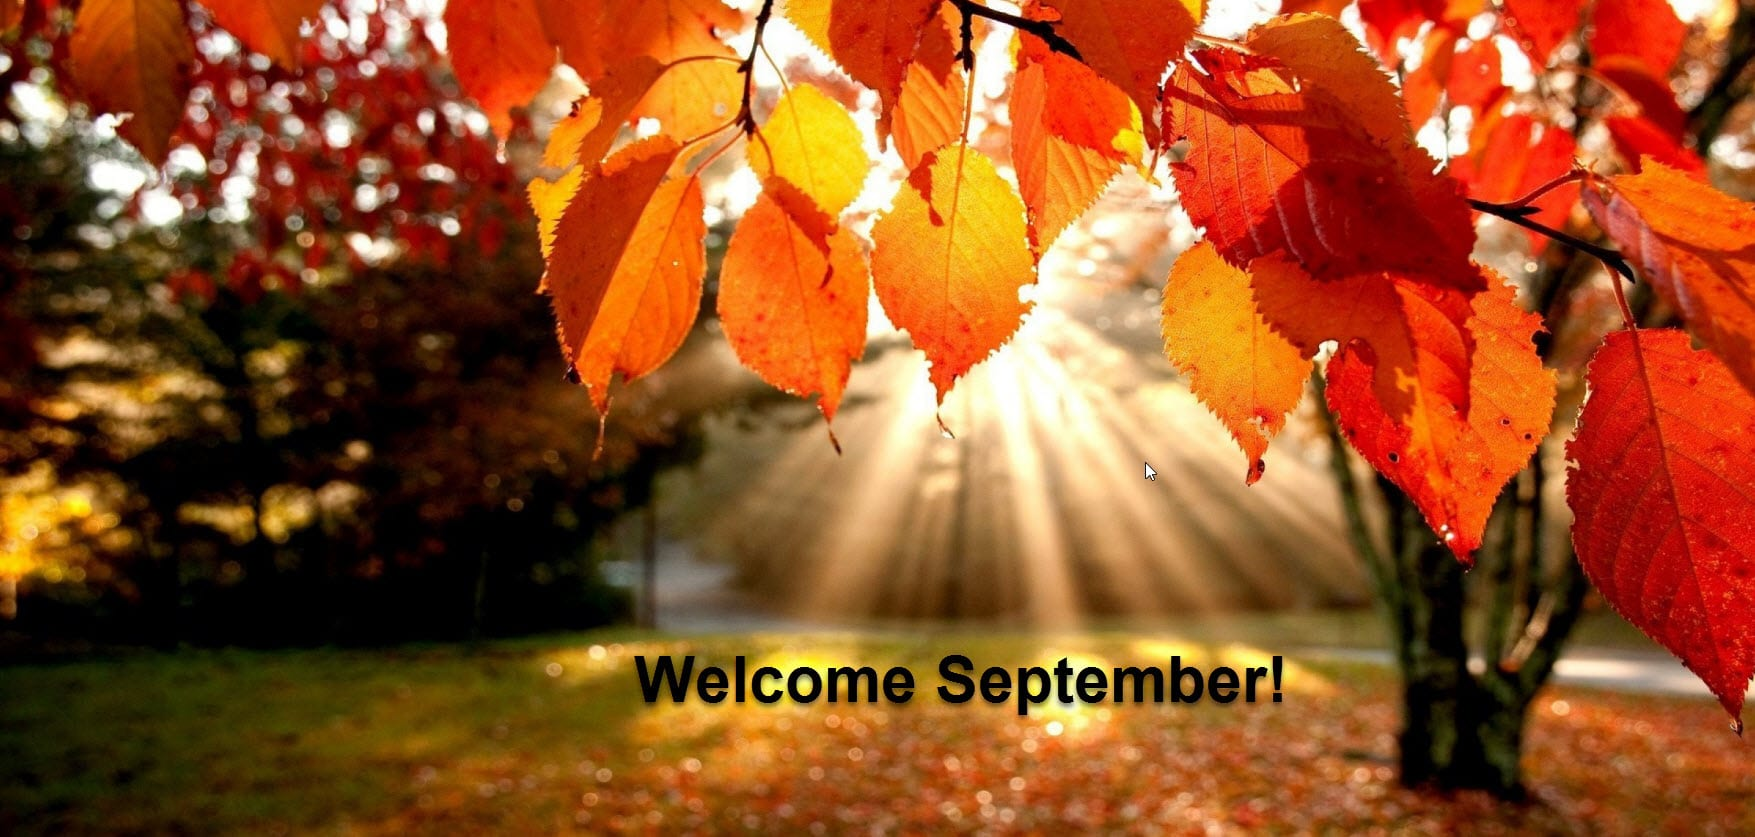 welcomesept